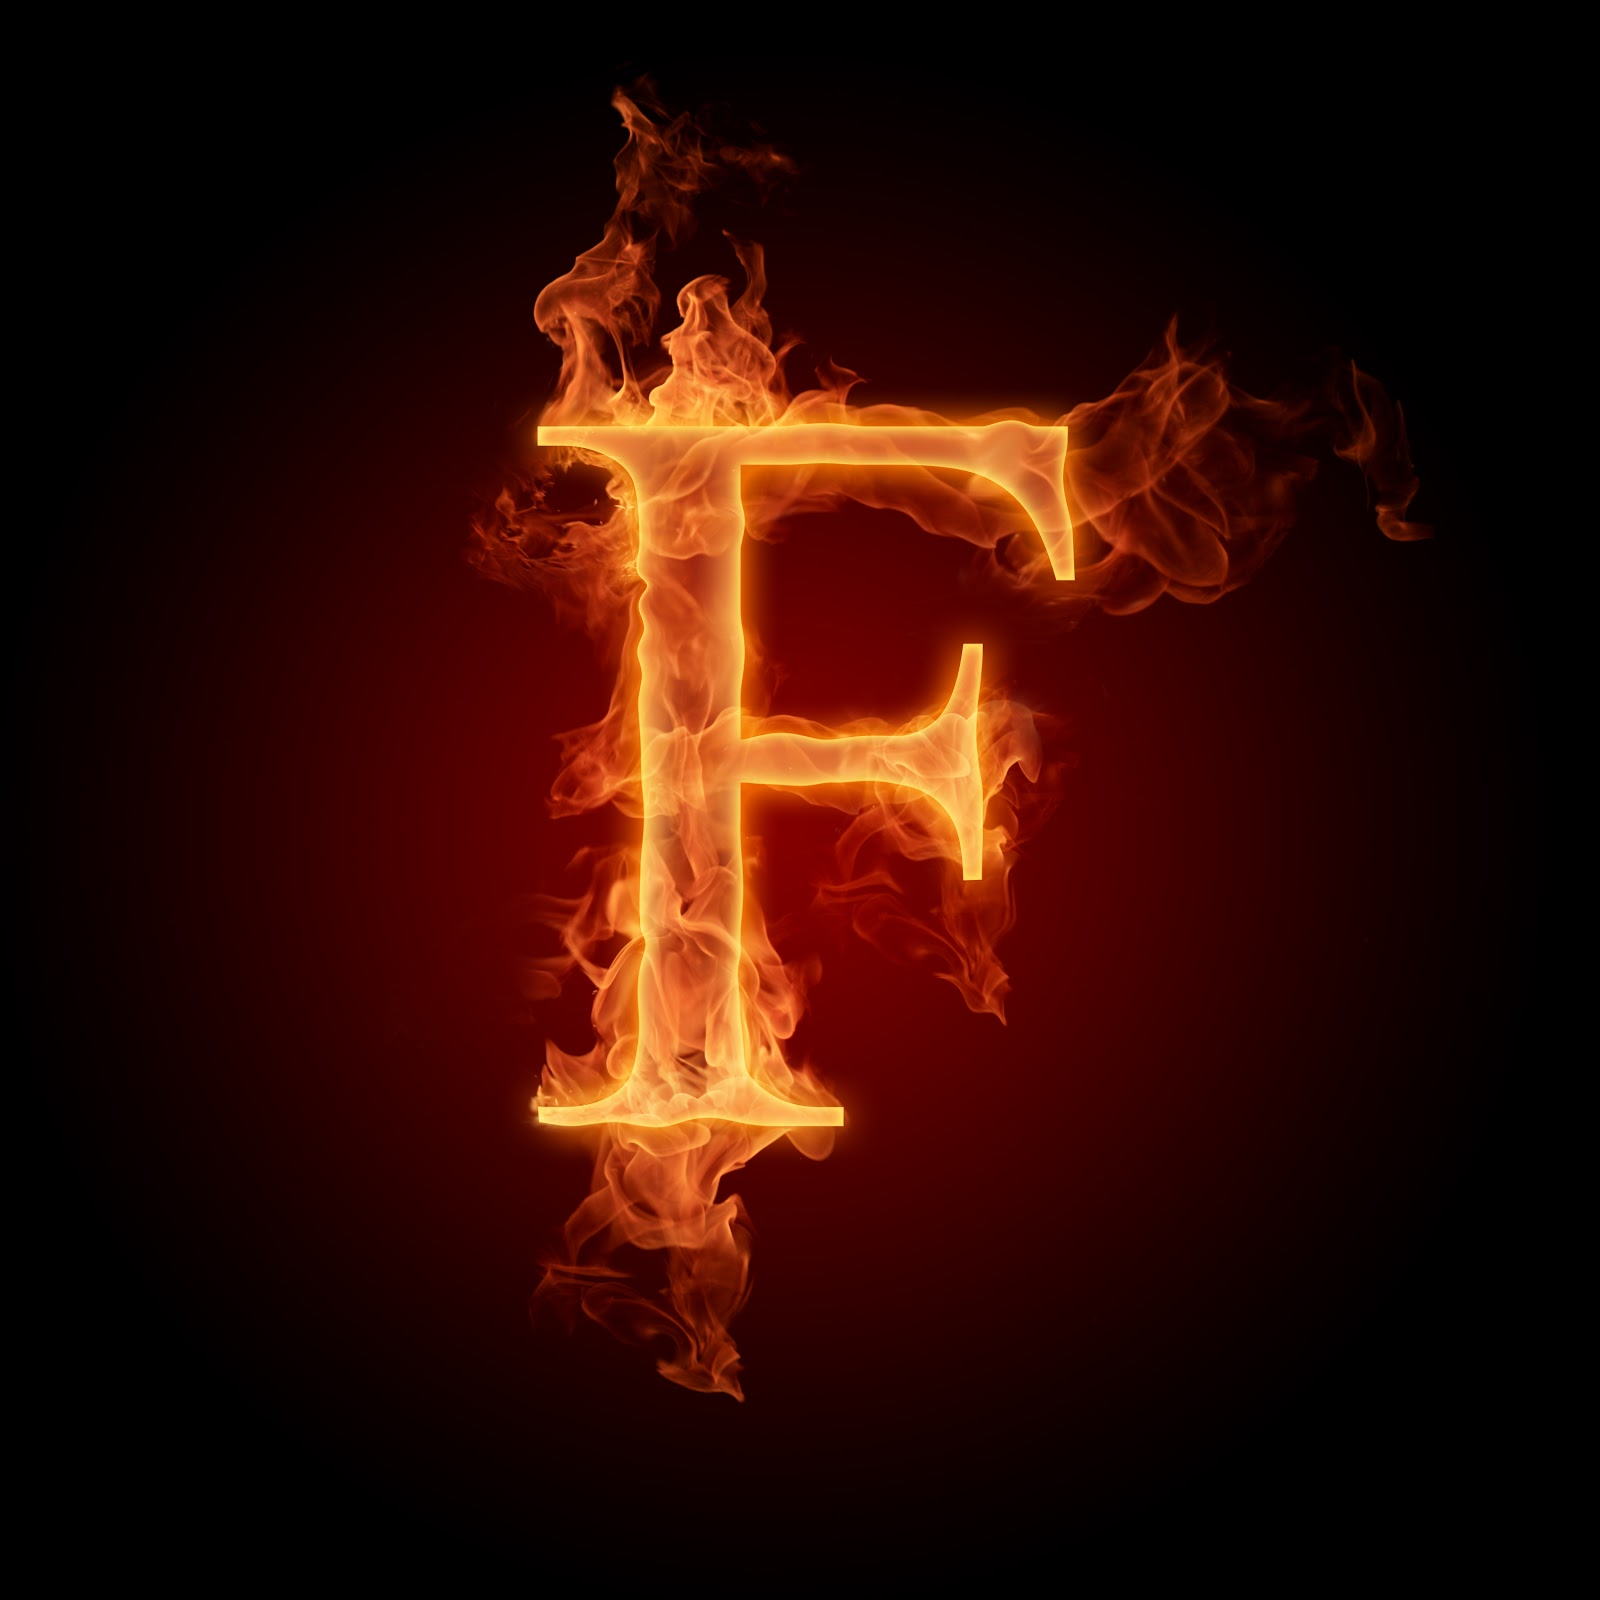 Letter F Wallpaper Download  Free Download Wallpaper